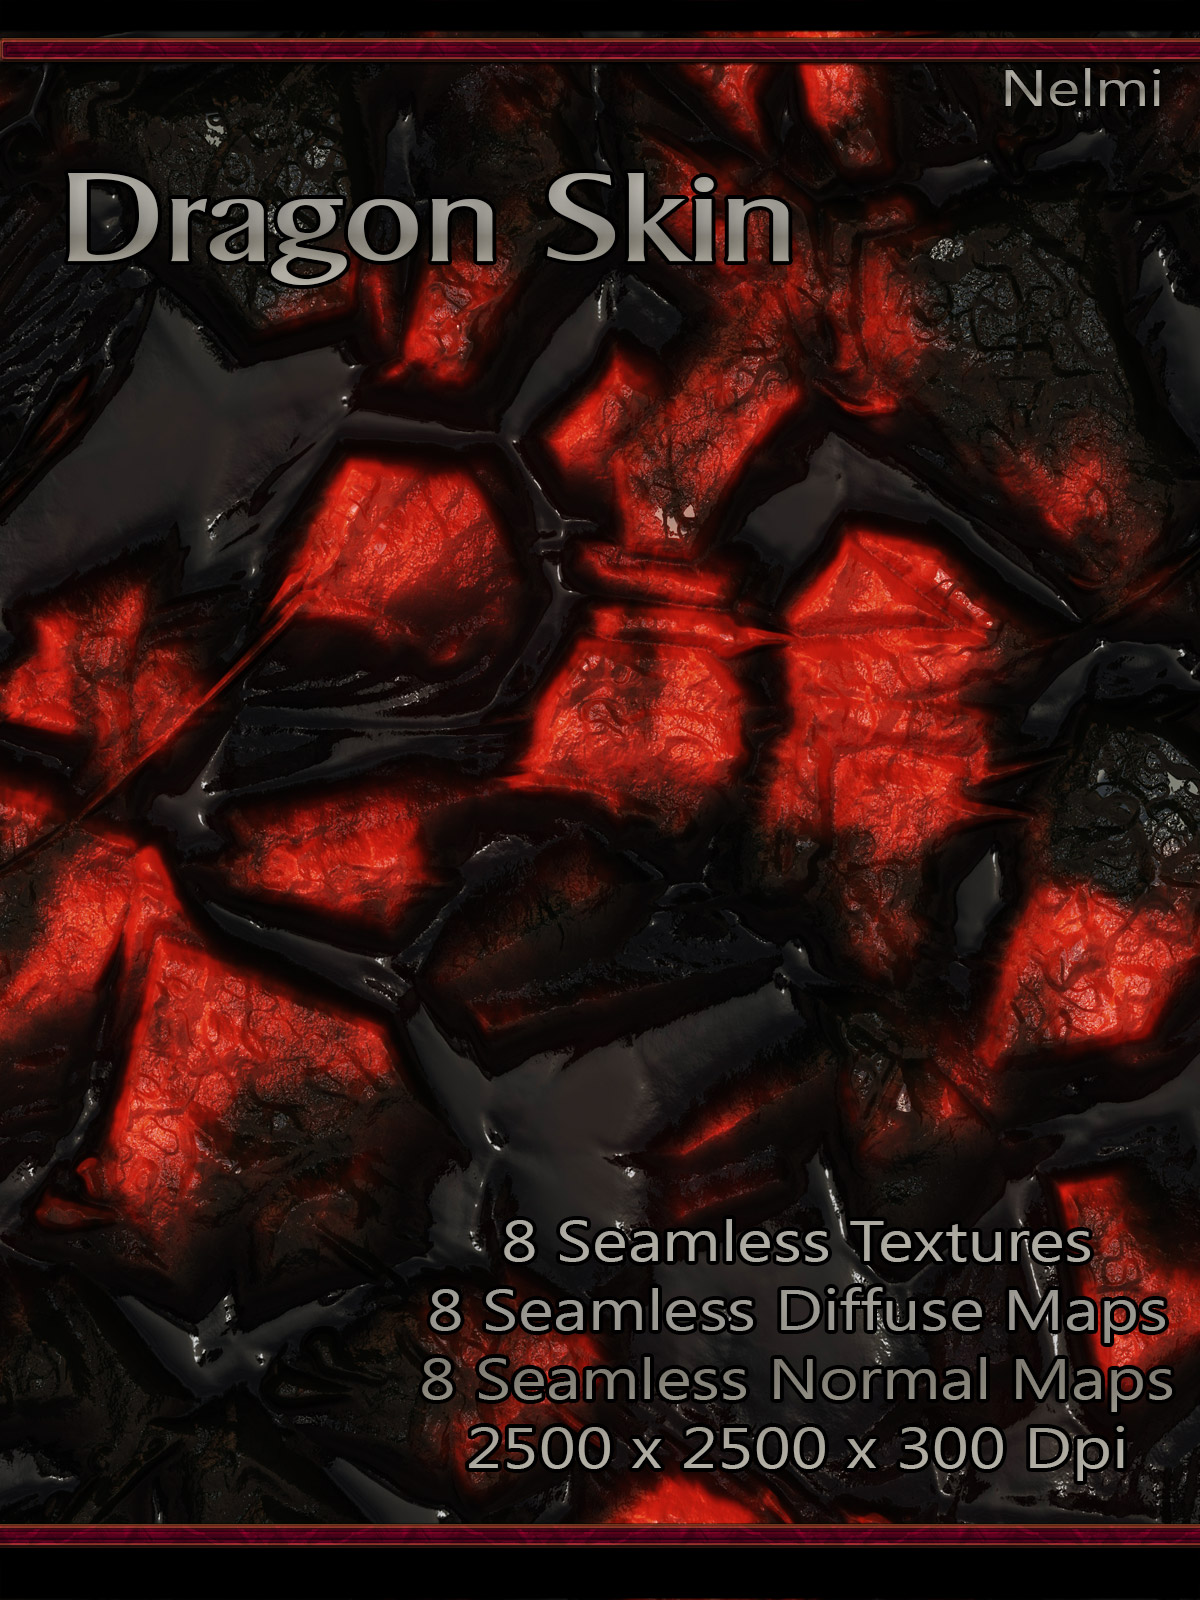 8 Dragon Skin Seamless Textures with Normal and Diffuse Maps